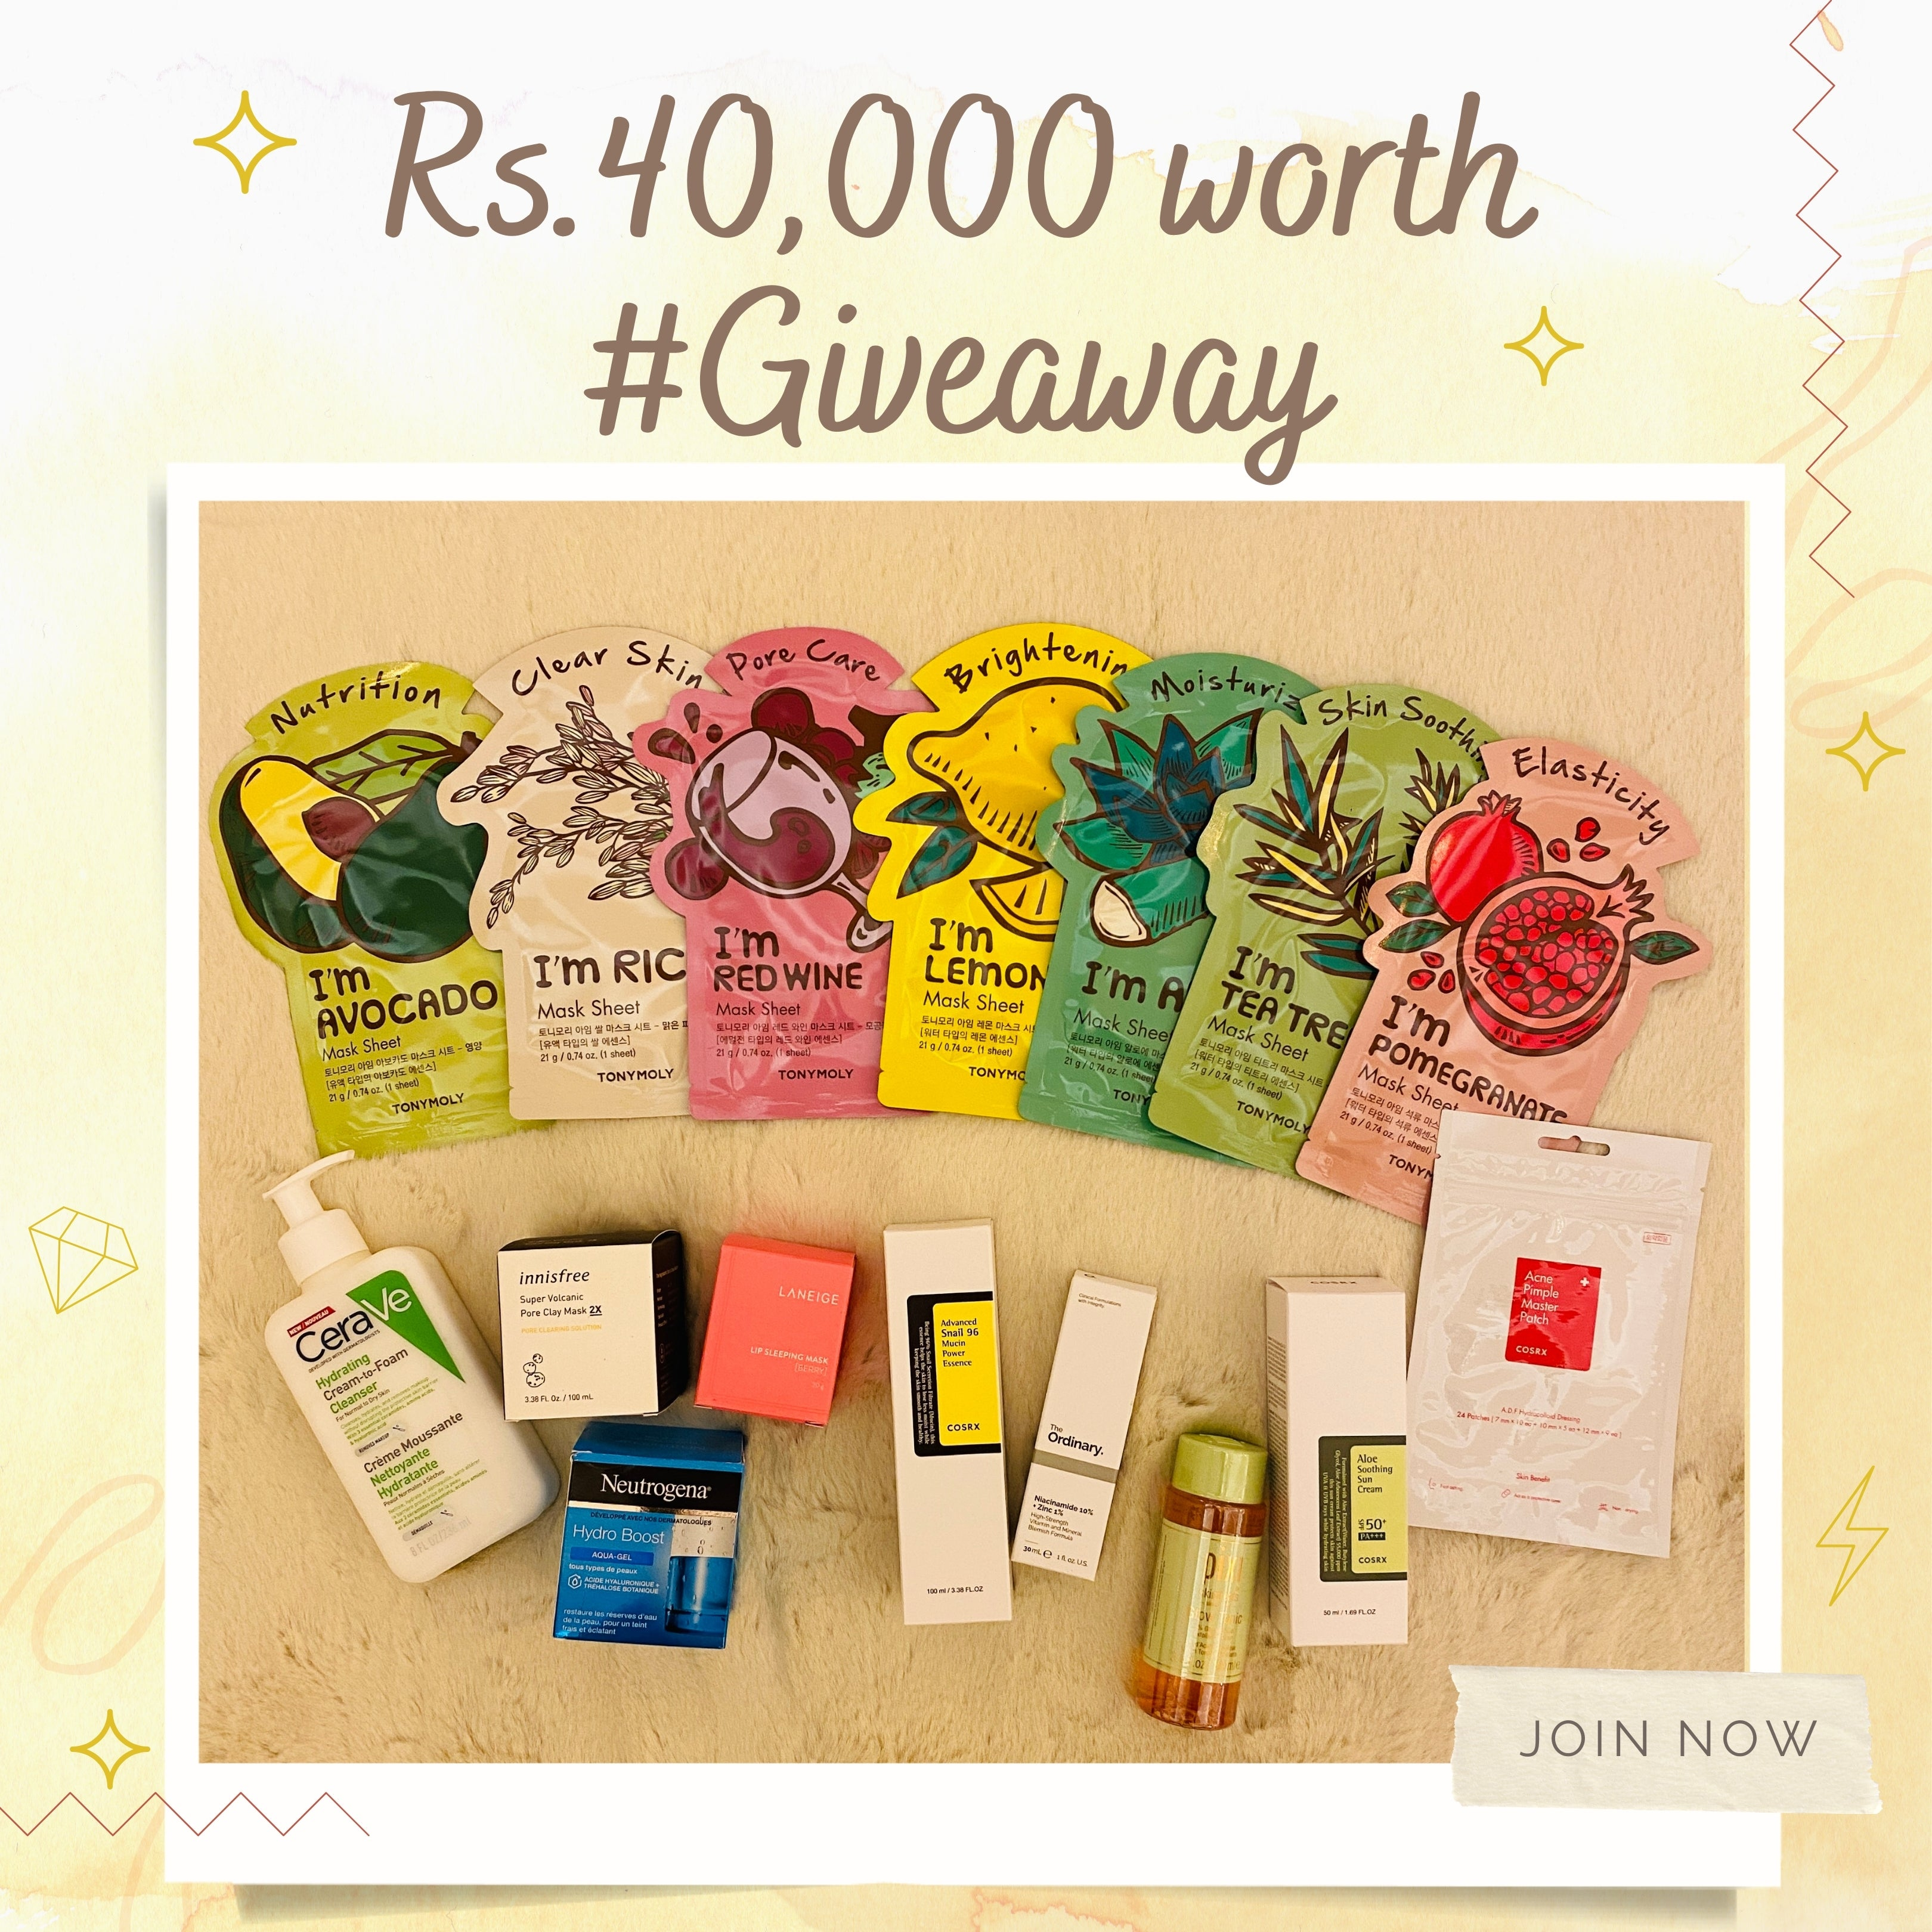 Rs. 40000 worth skincare giveaway at orion beauty sri lanka.